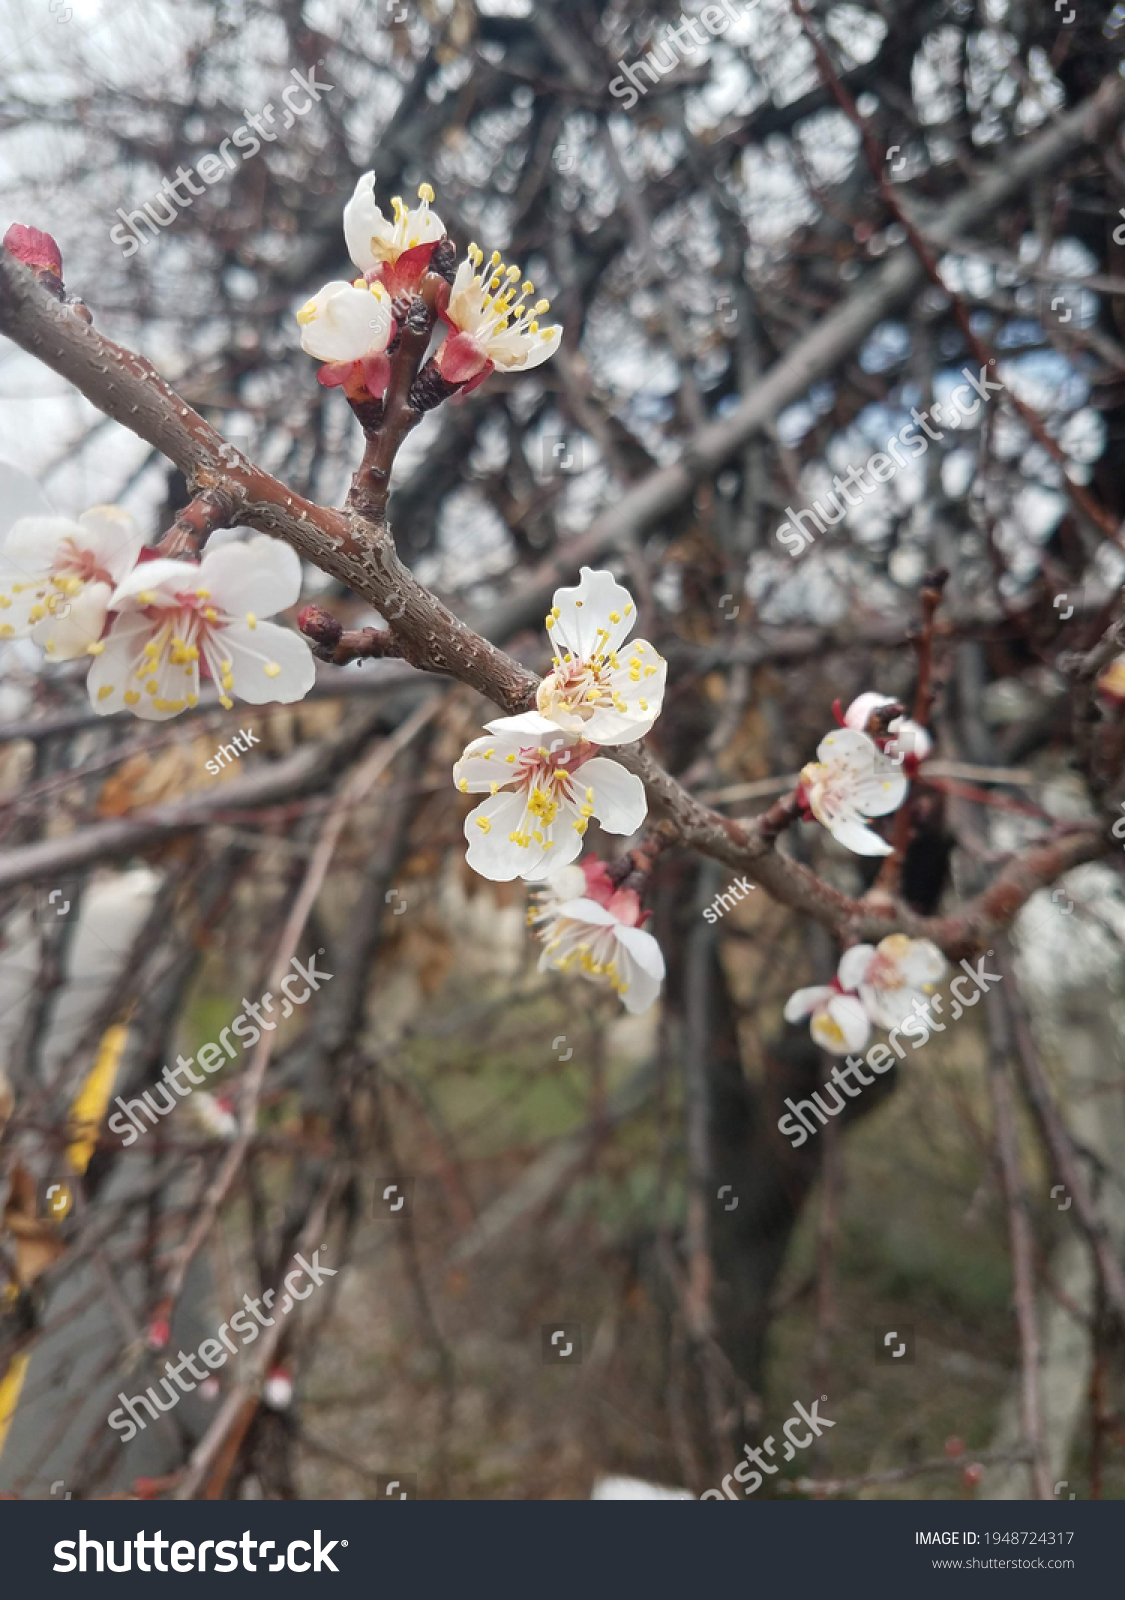 stock-photo-first-signs-of-spring-with-a